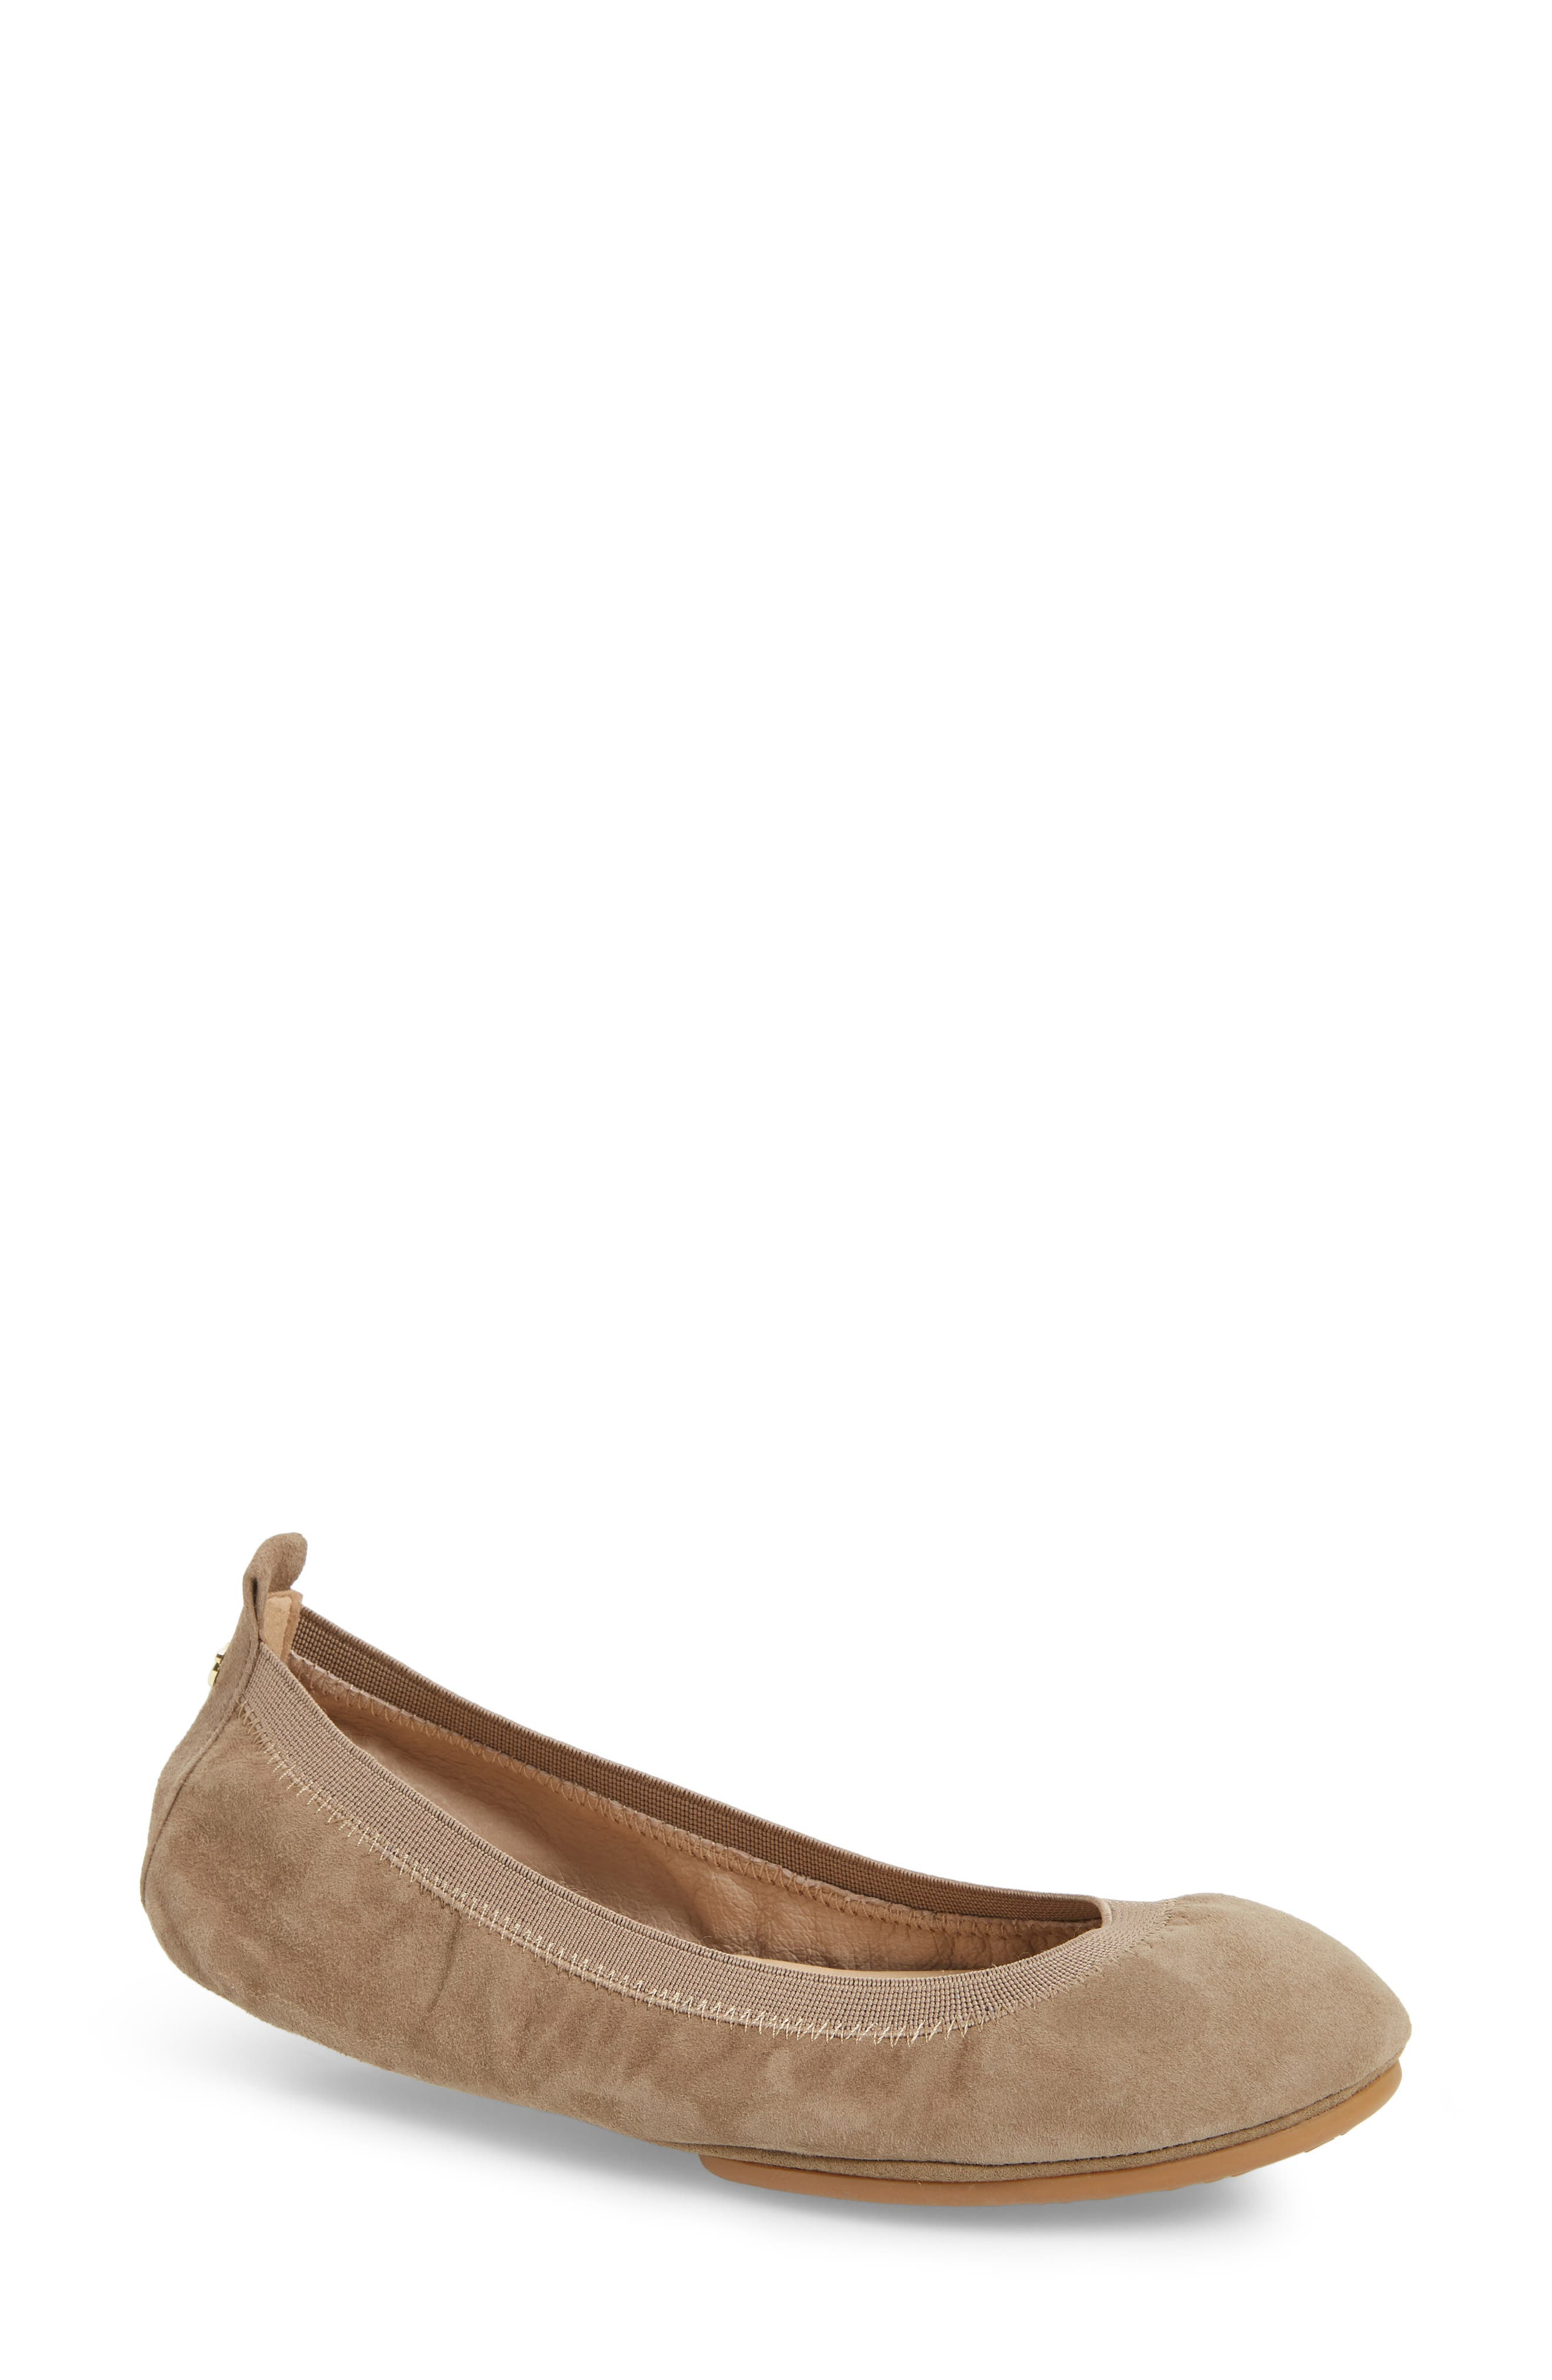 Samara Foldable Ballet Flat,                         Main,                         color, STONE SUEDE